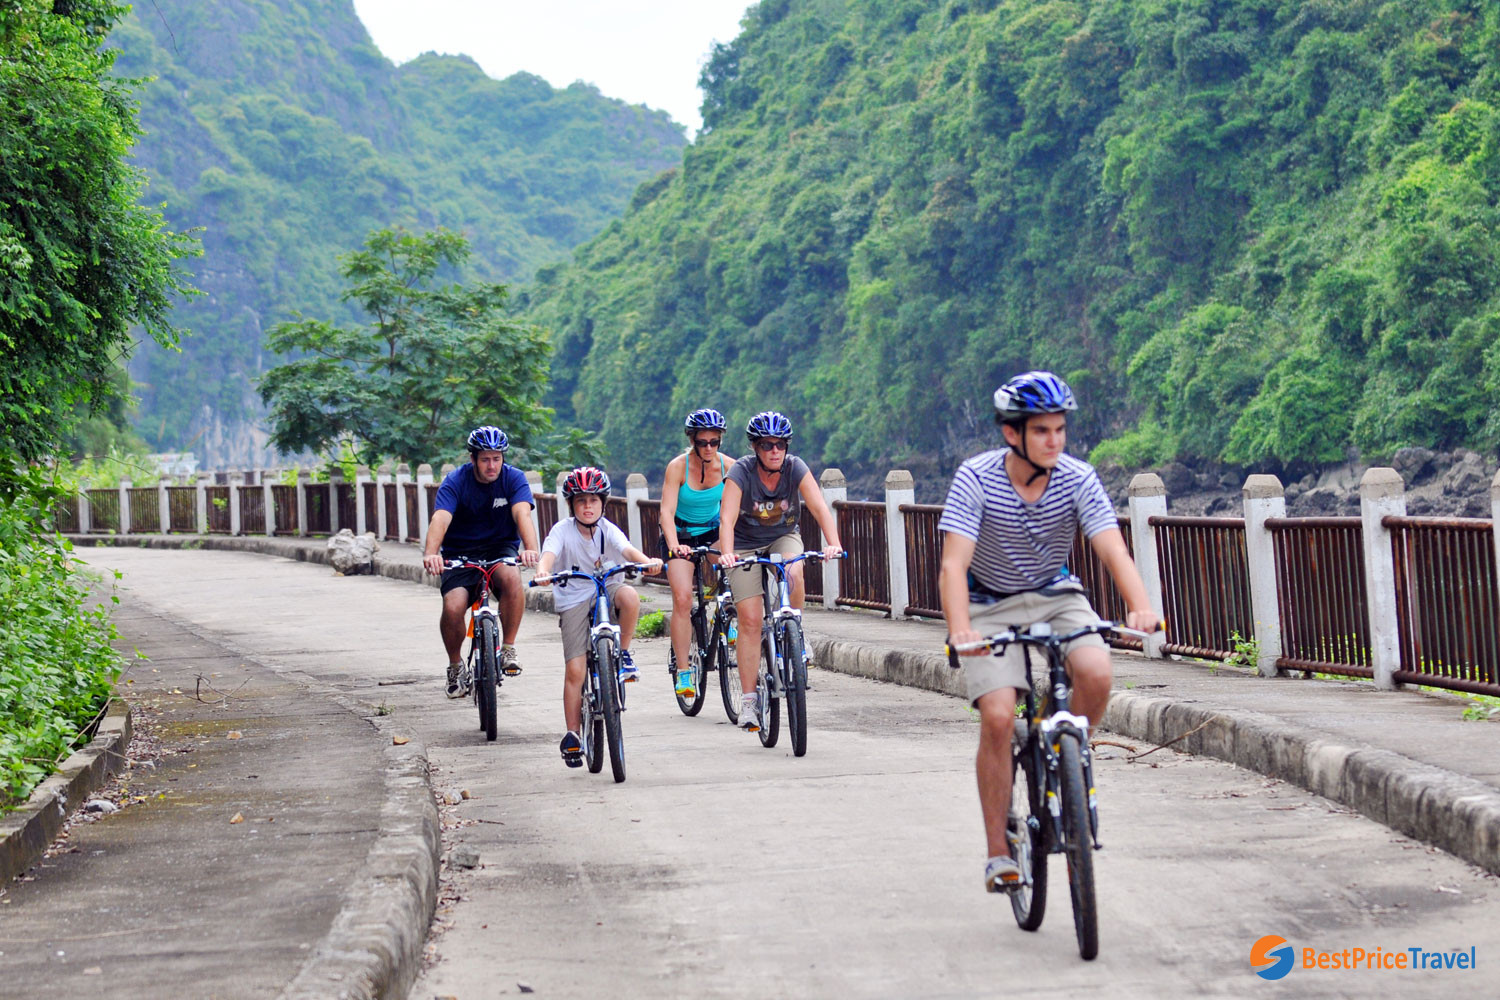 Cycling - Things to Do in Halong Bay